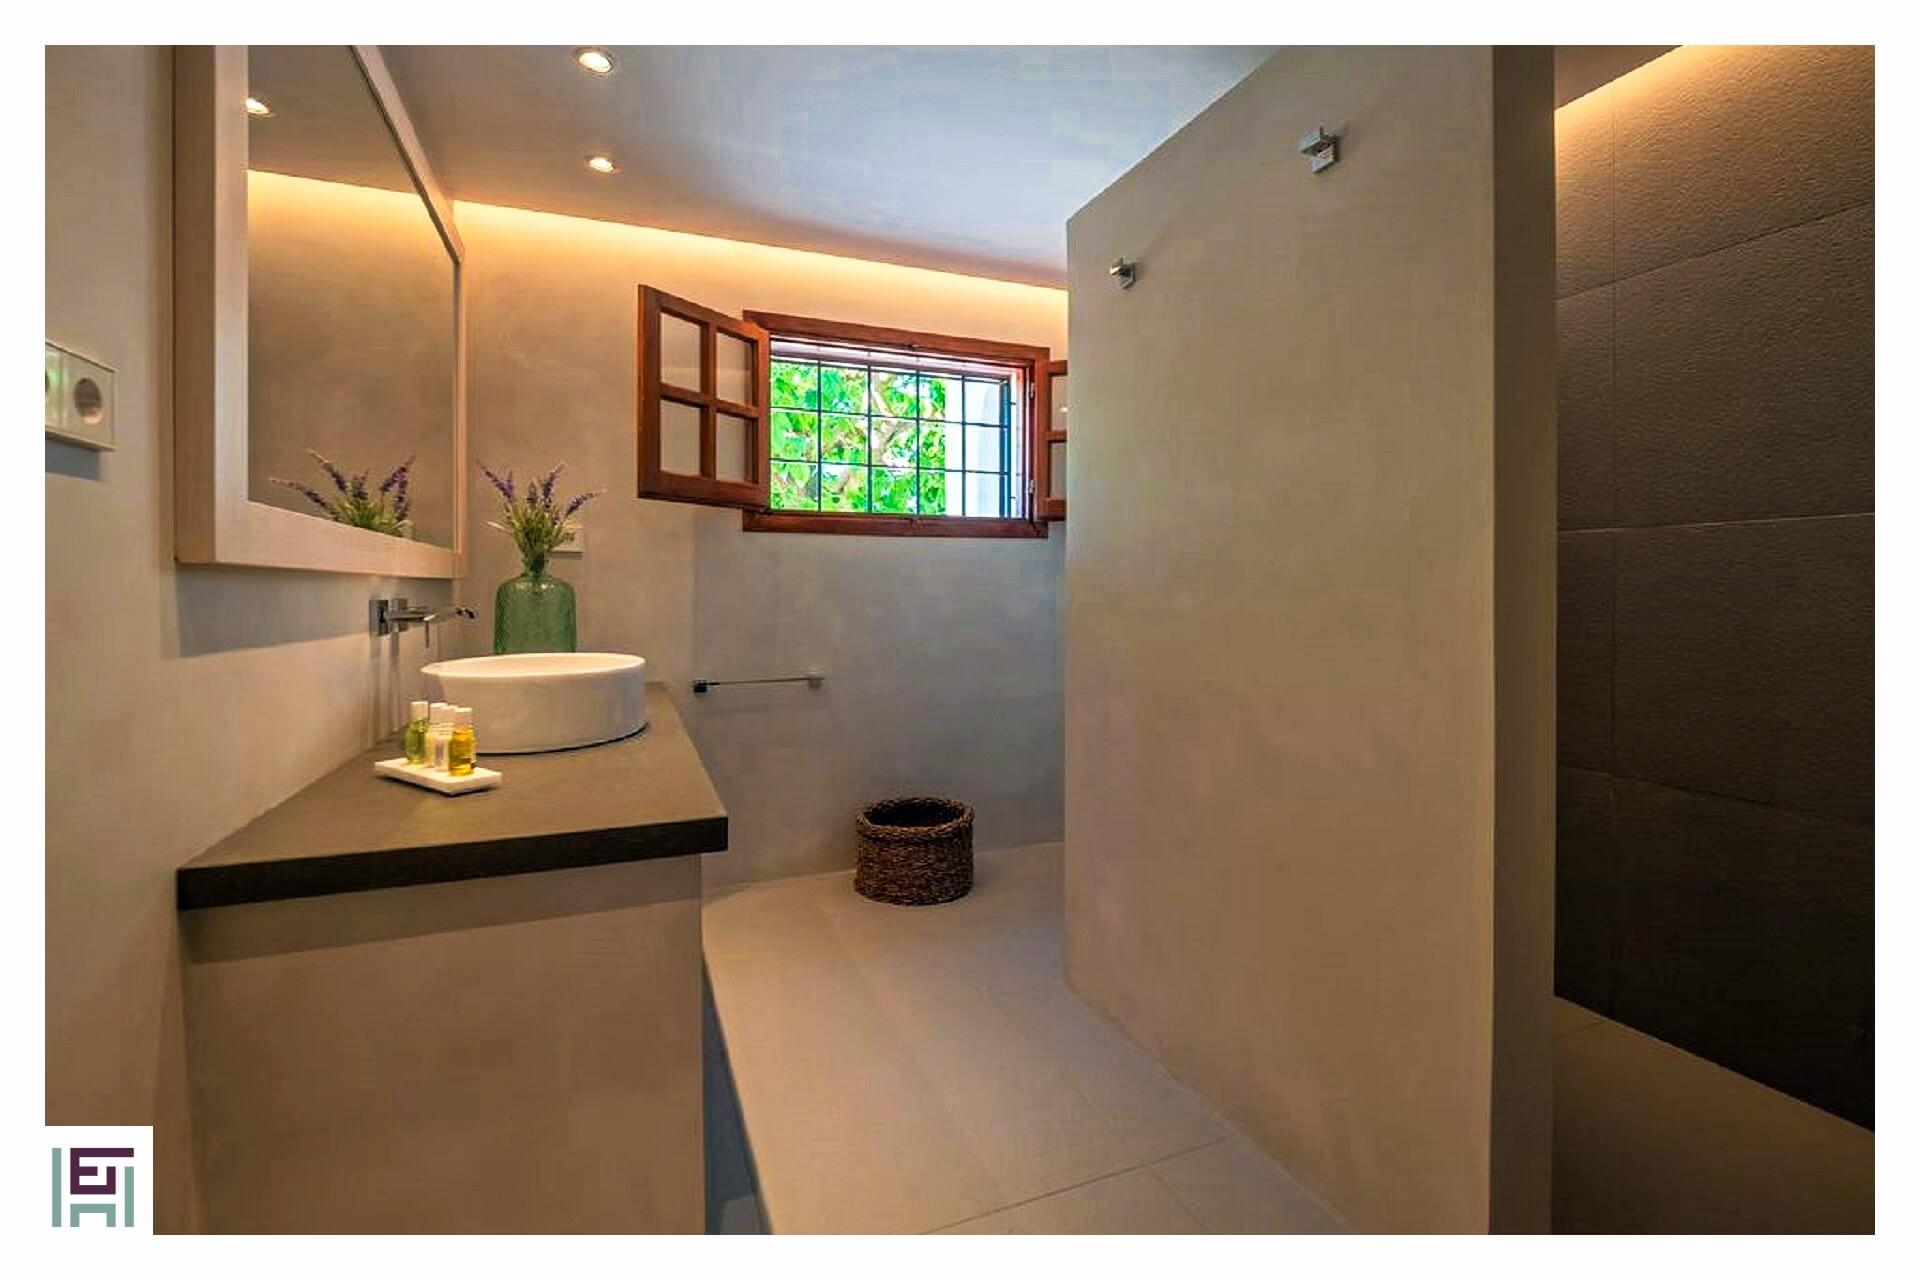 Finca C. Rosita - Bathroom ground floor with shower